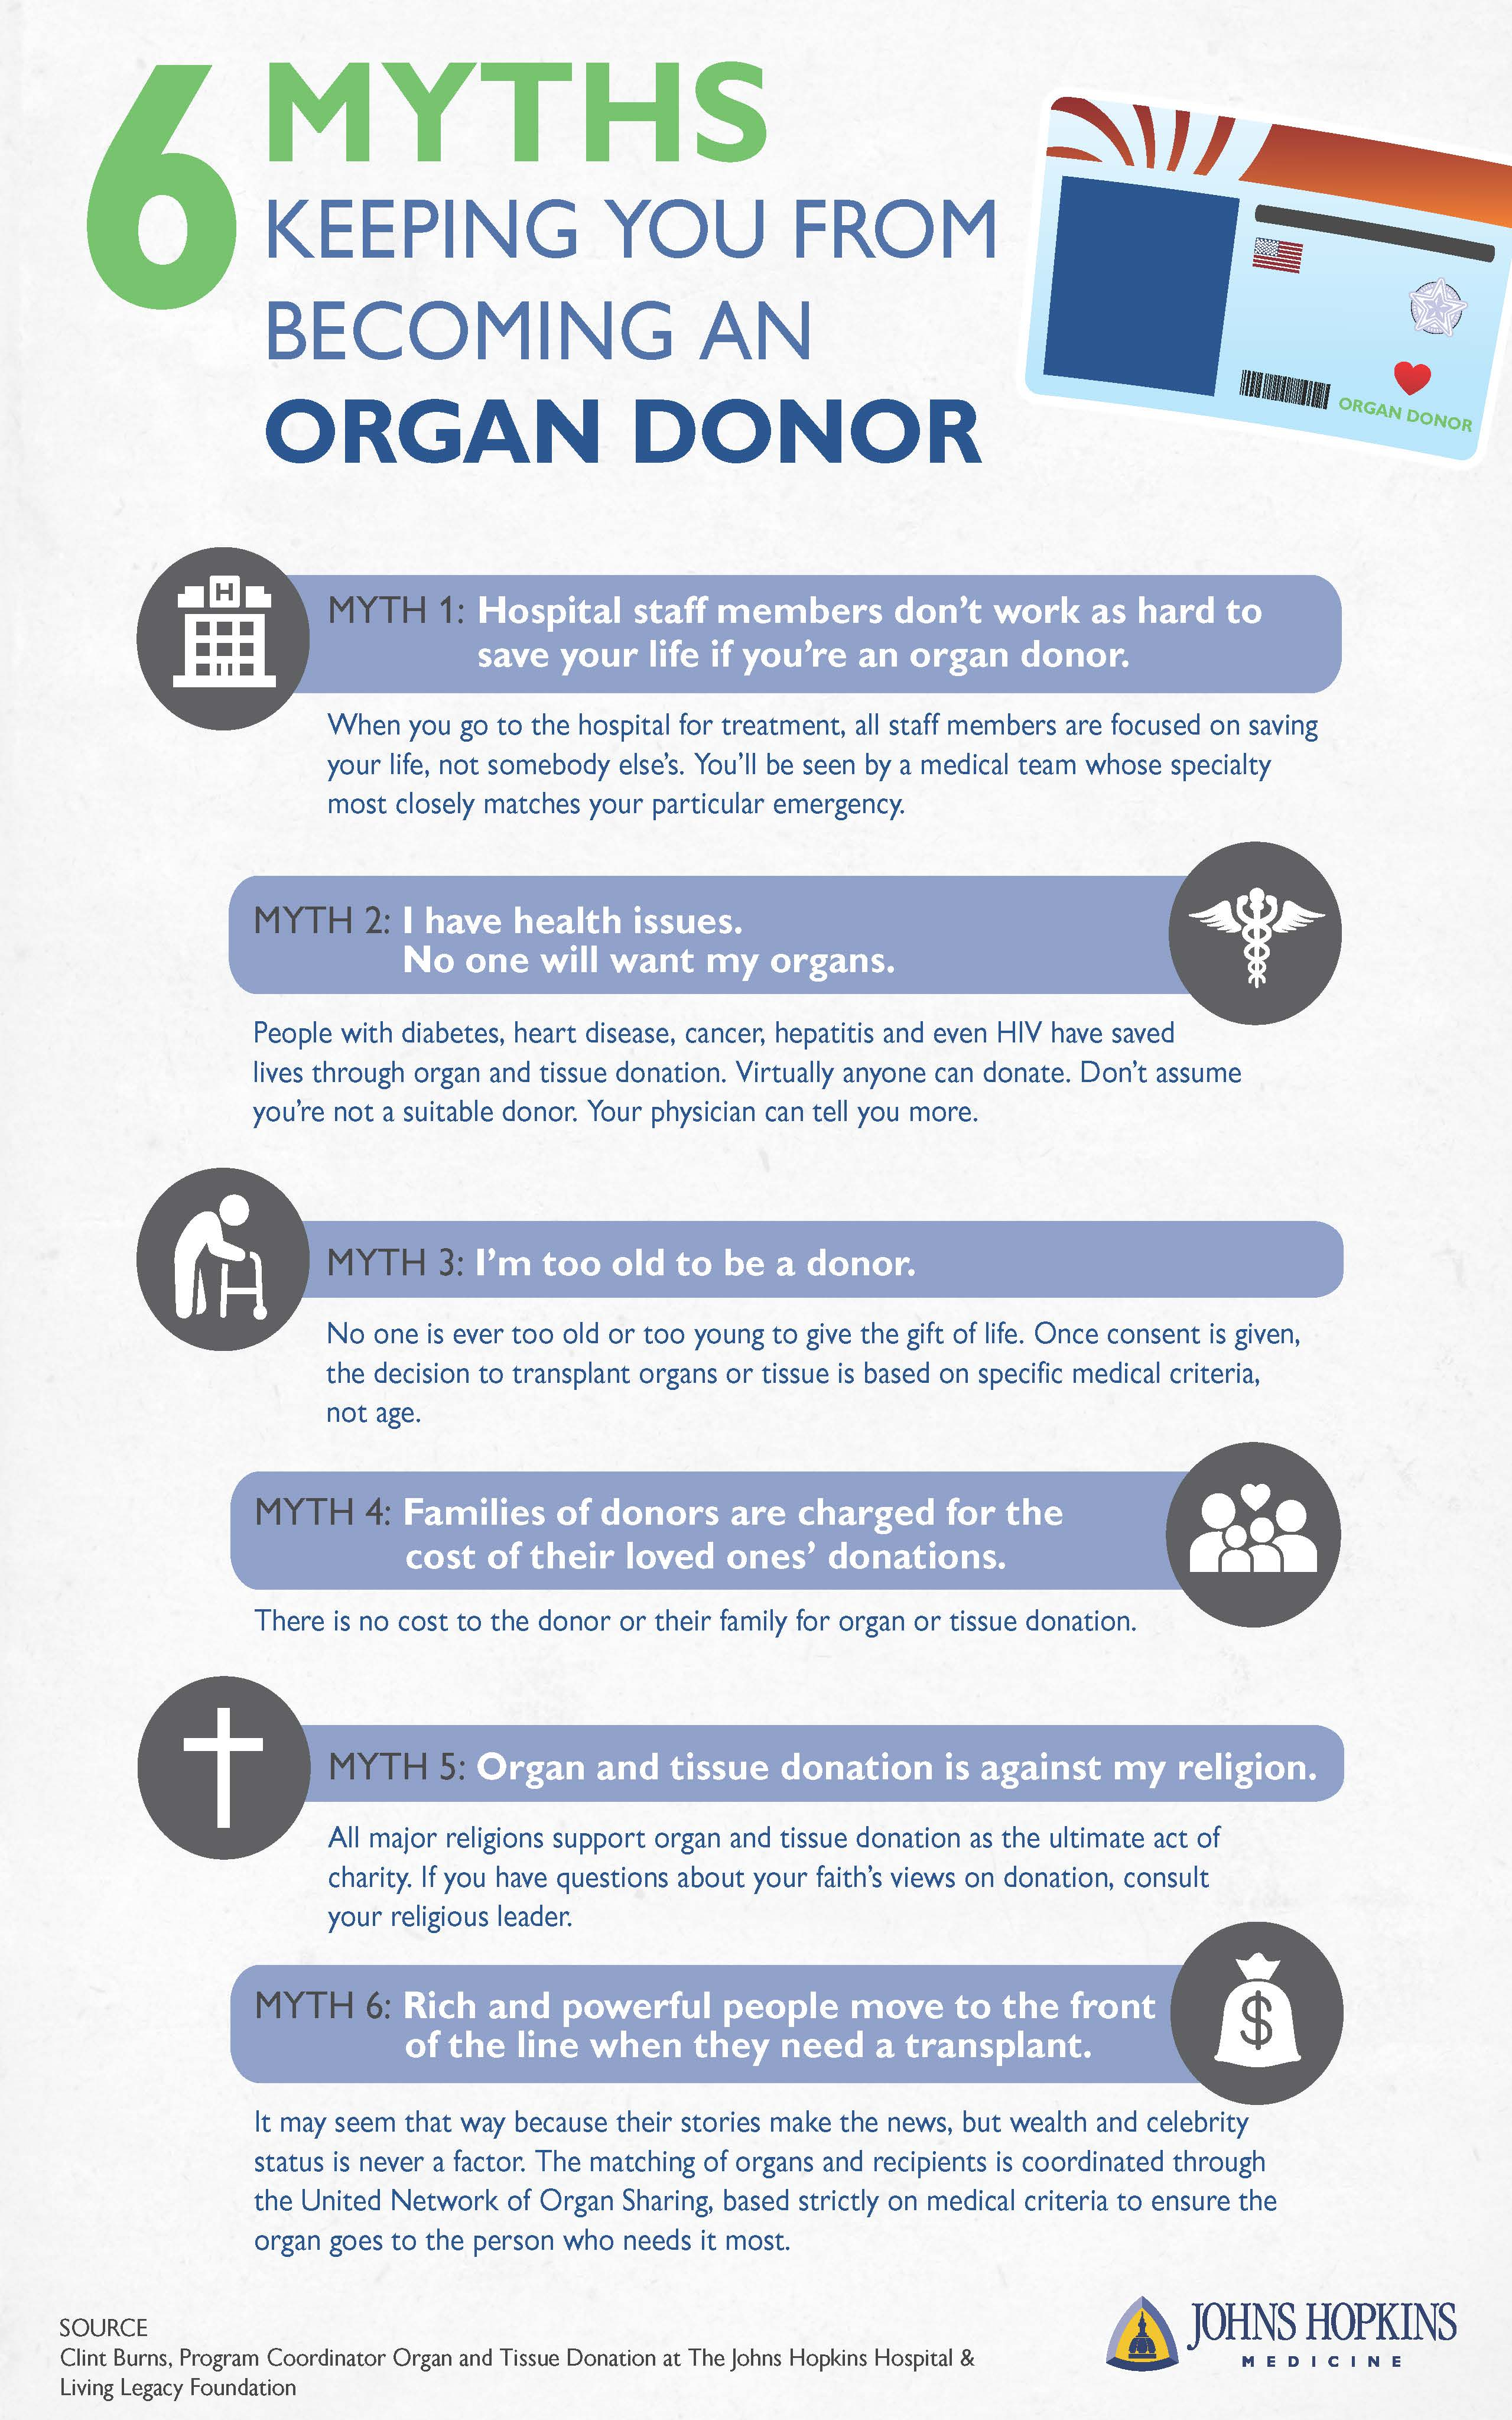 6 Myths Keeping You from Becoming an Organ Donor infographic